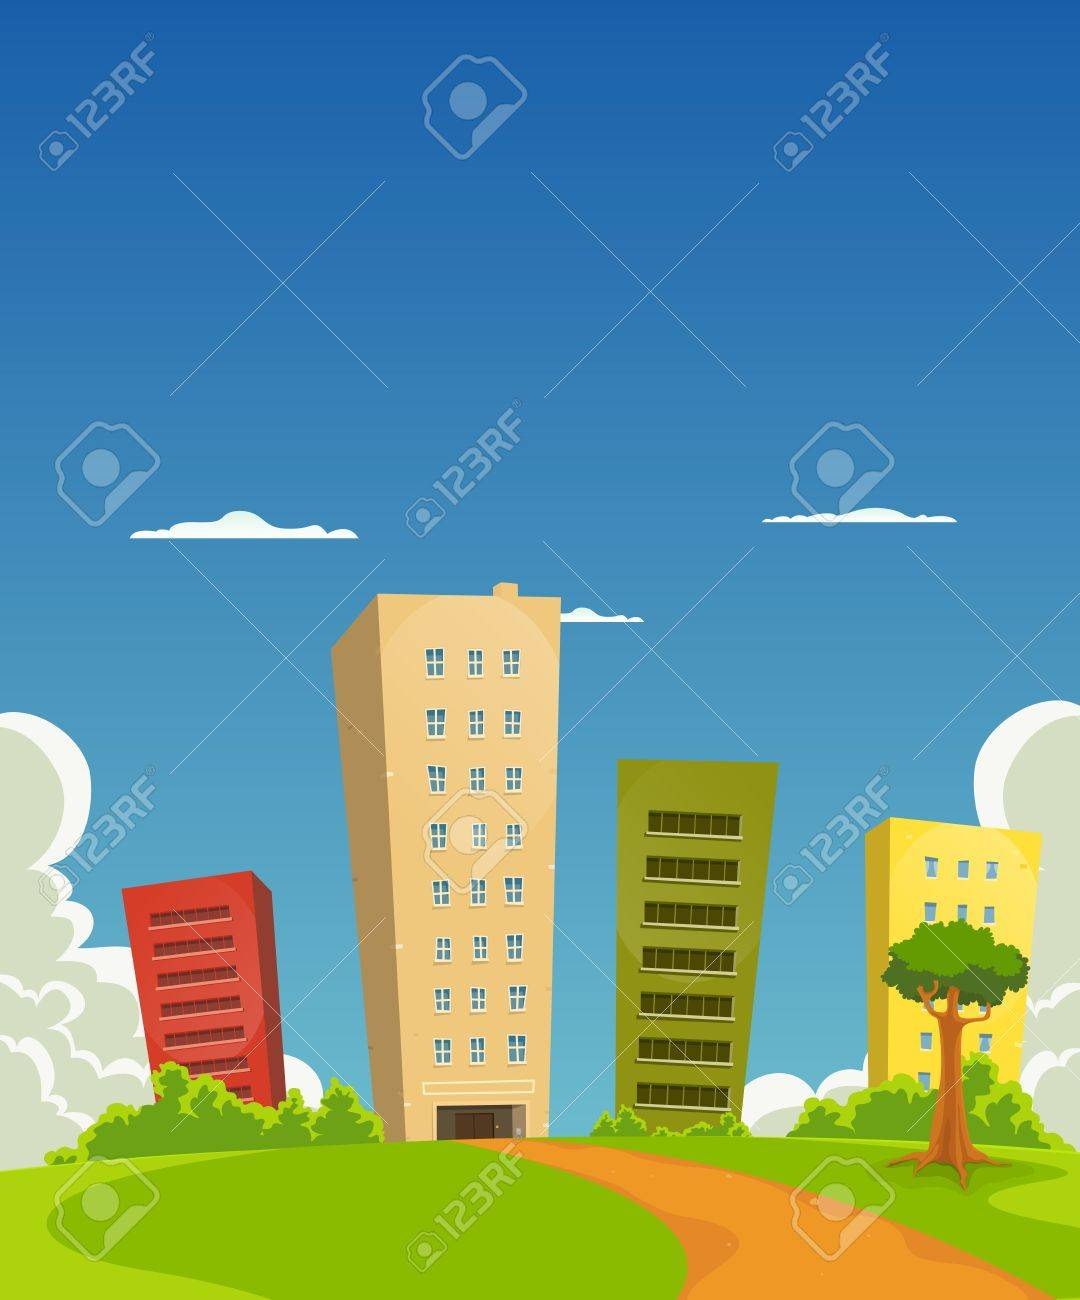 Illustration of a group of cartoon residential and office building tower Stock Vector - 11248558